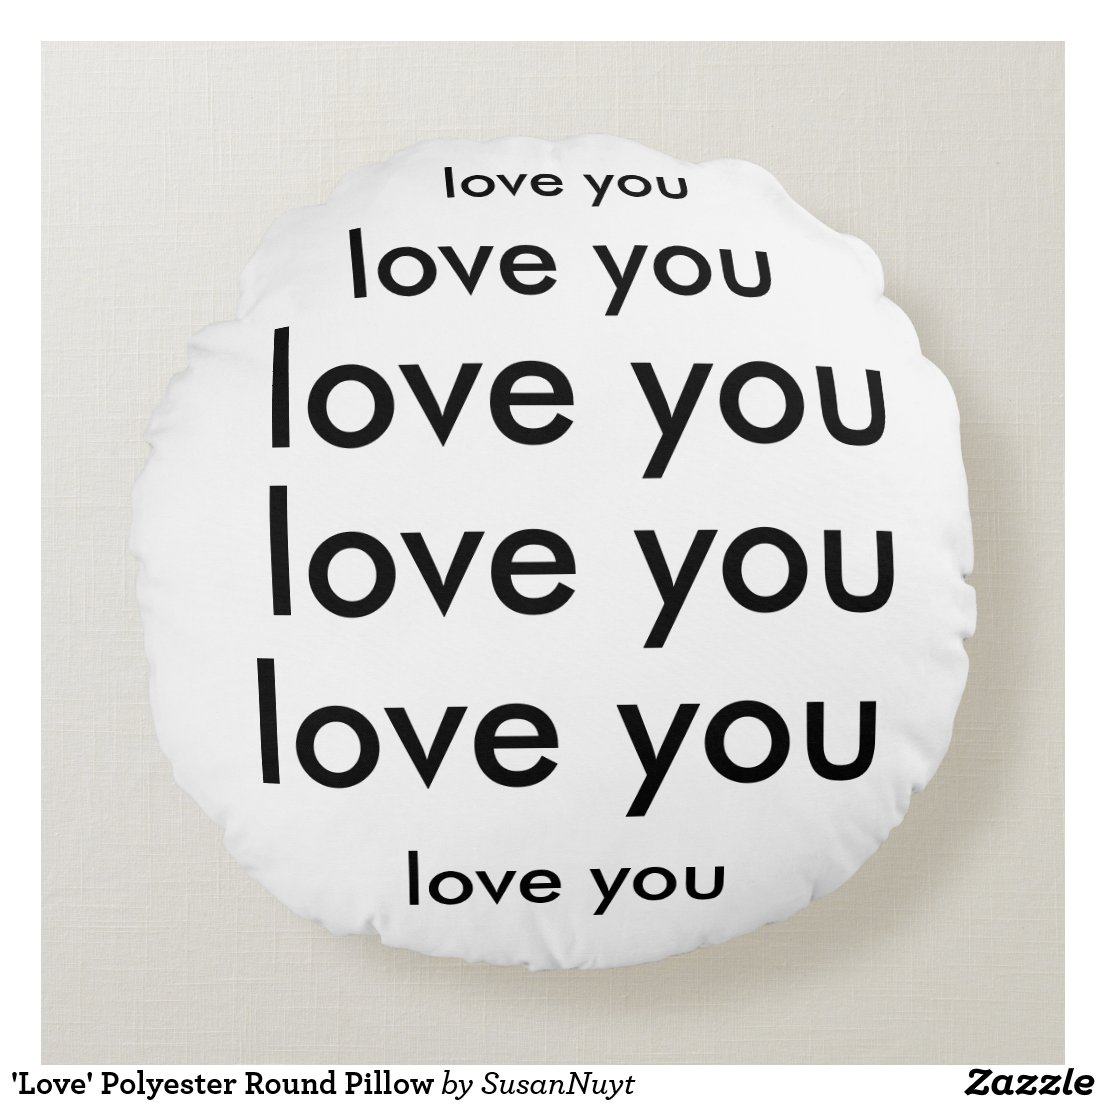 'Love' Polyester Round Pillow